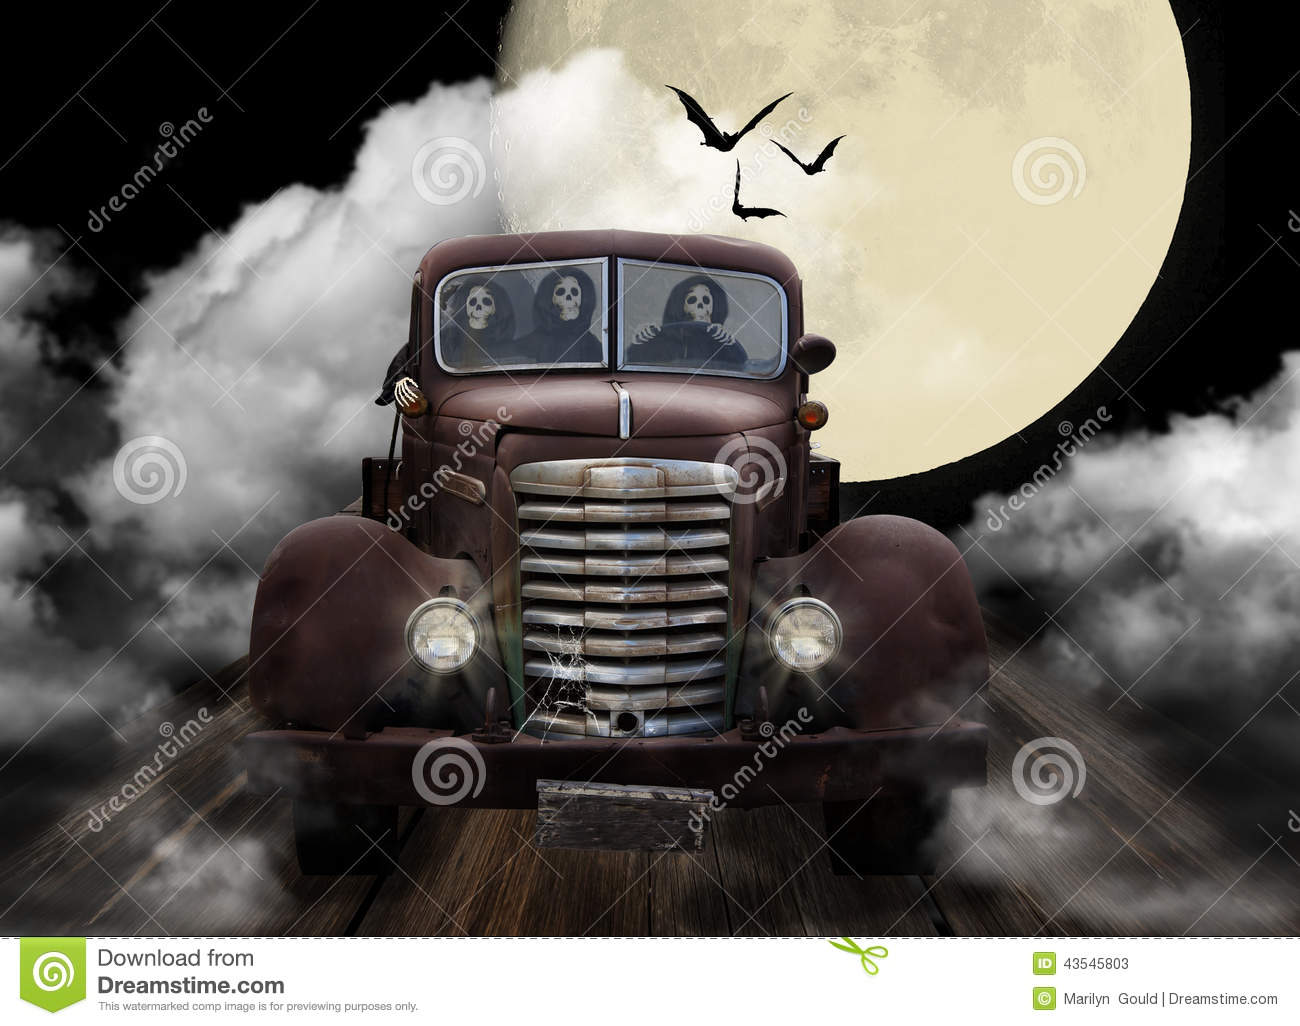 Fall Witch Wallpaper Halloween Ghouls Joyriding In Truck Stock Photo Image